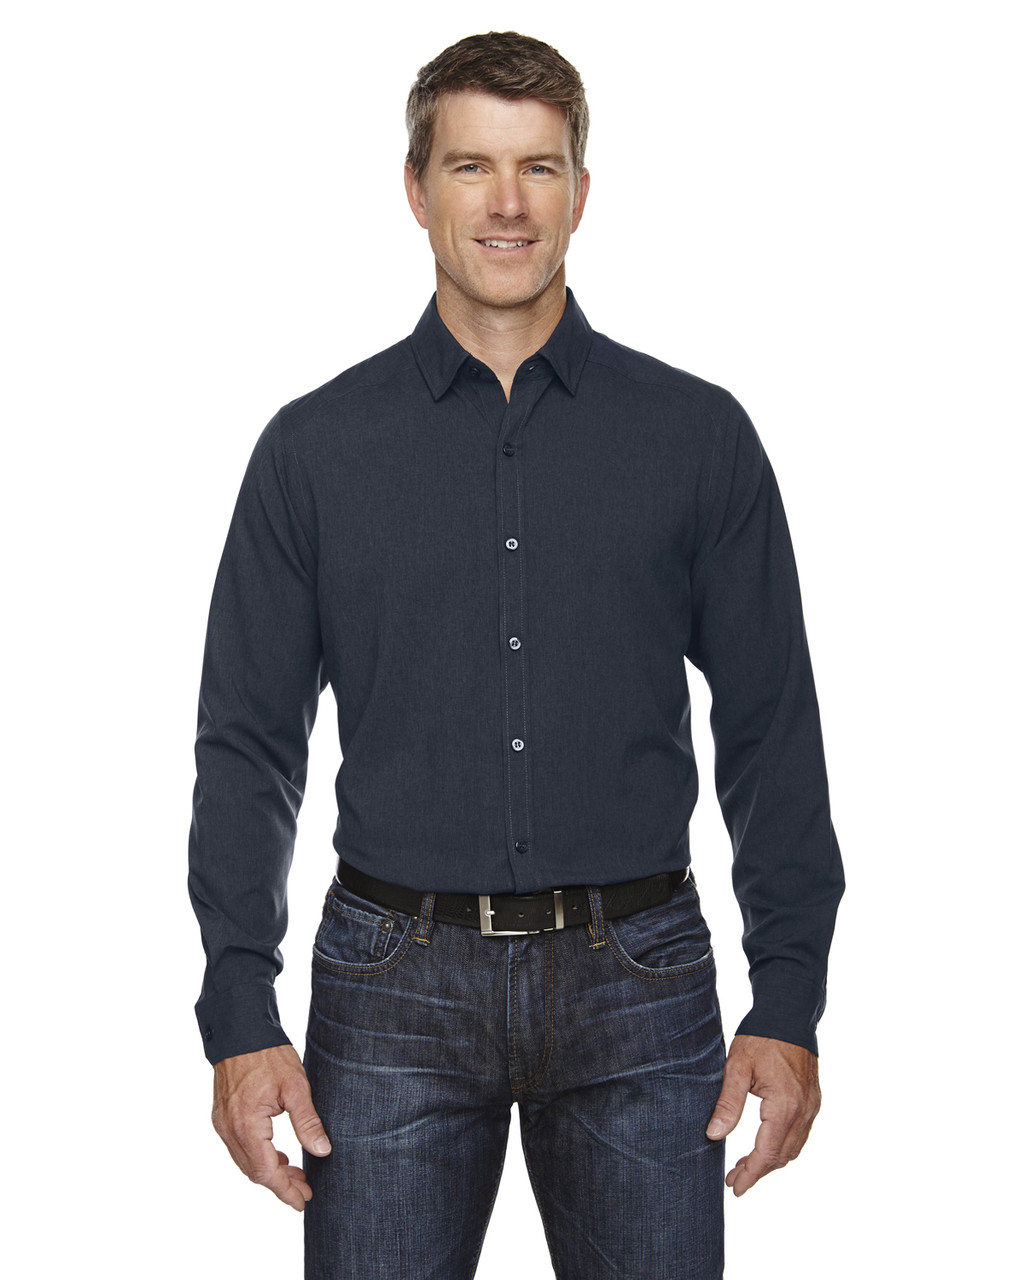 Night - 88802 Ash City - North End Sport Blue Central Ave Mélange Performance Shirt | Blankclothing.ca